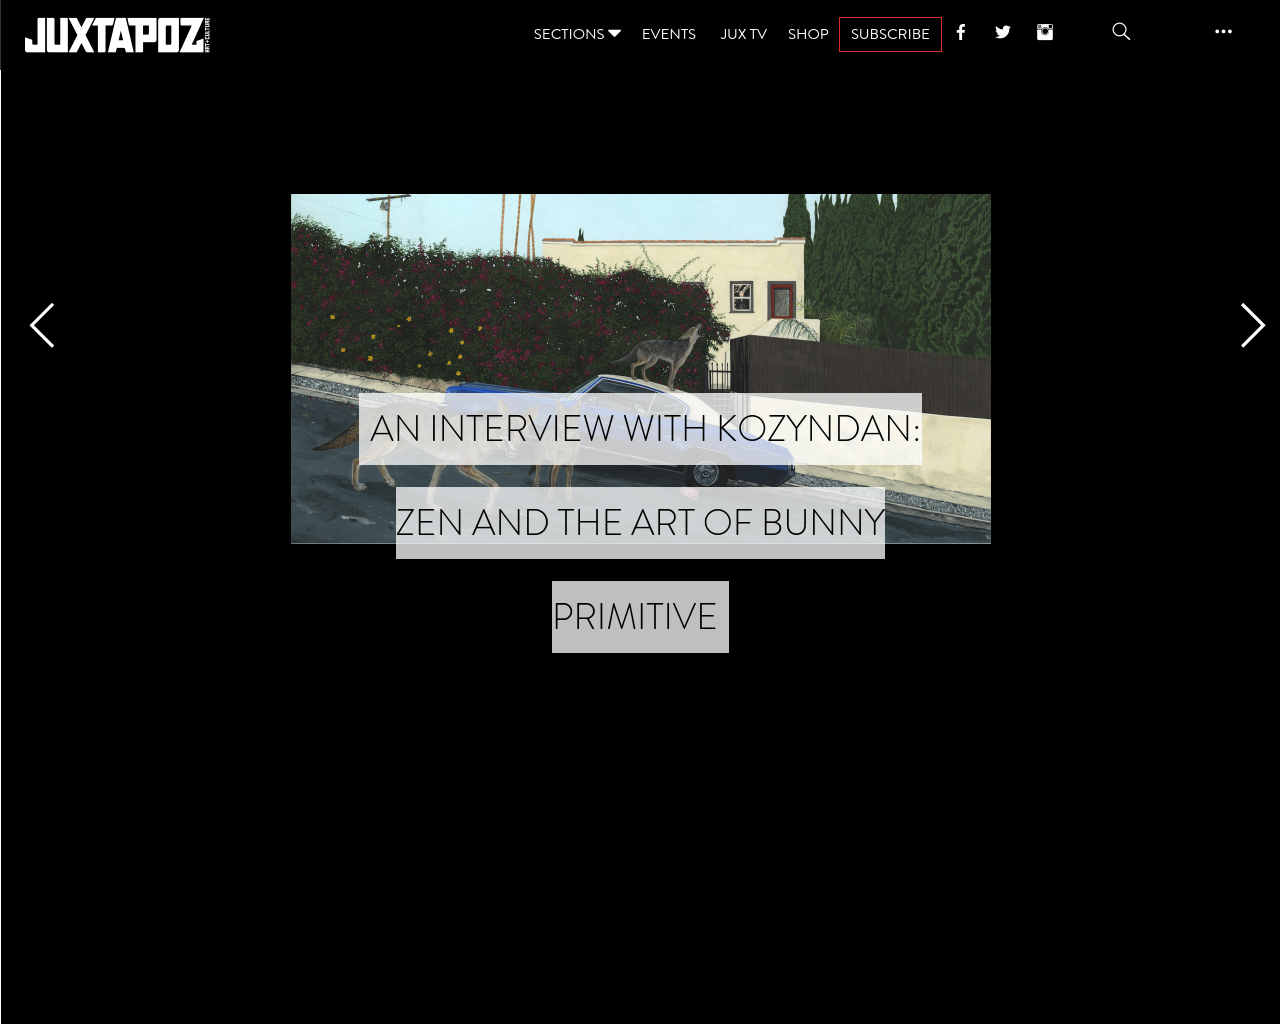 Juxtapoz-Art-&-Culture-Magazine-Advertising-Reviews-Pricing